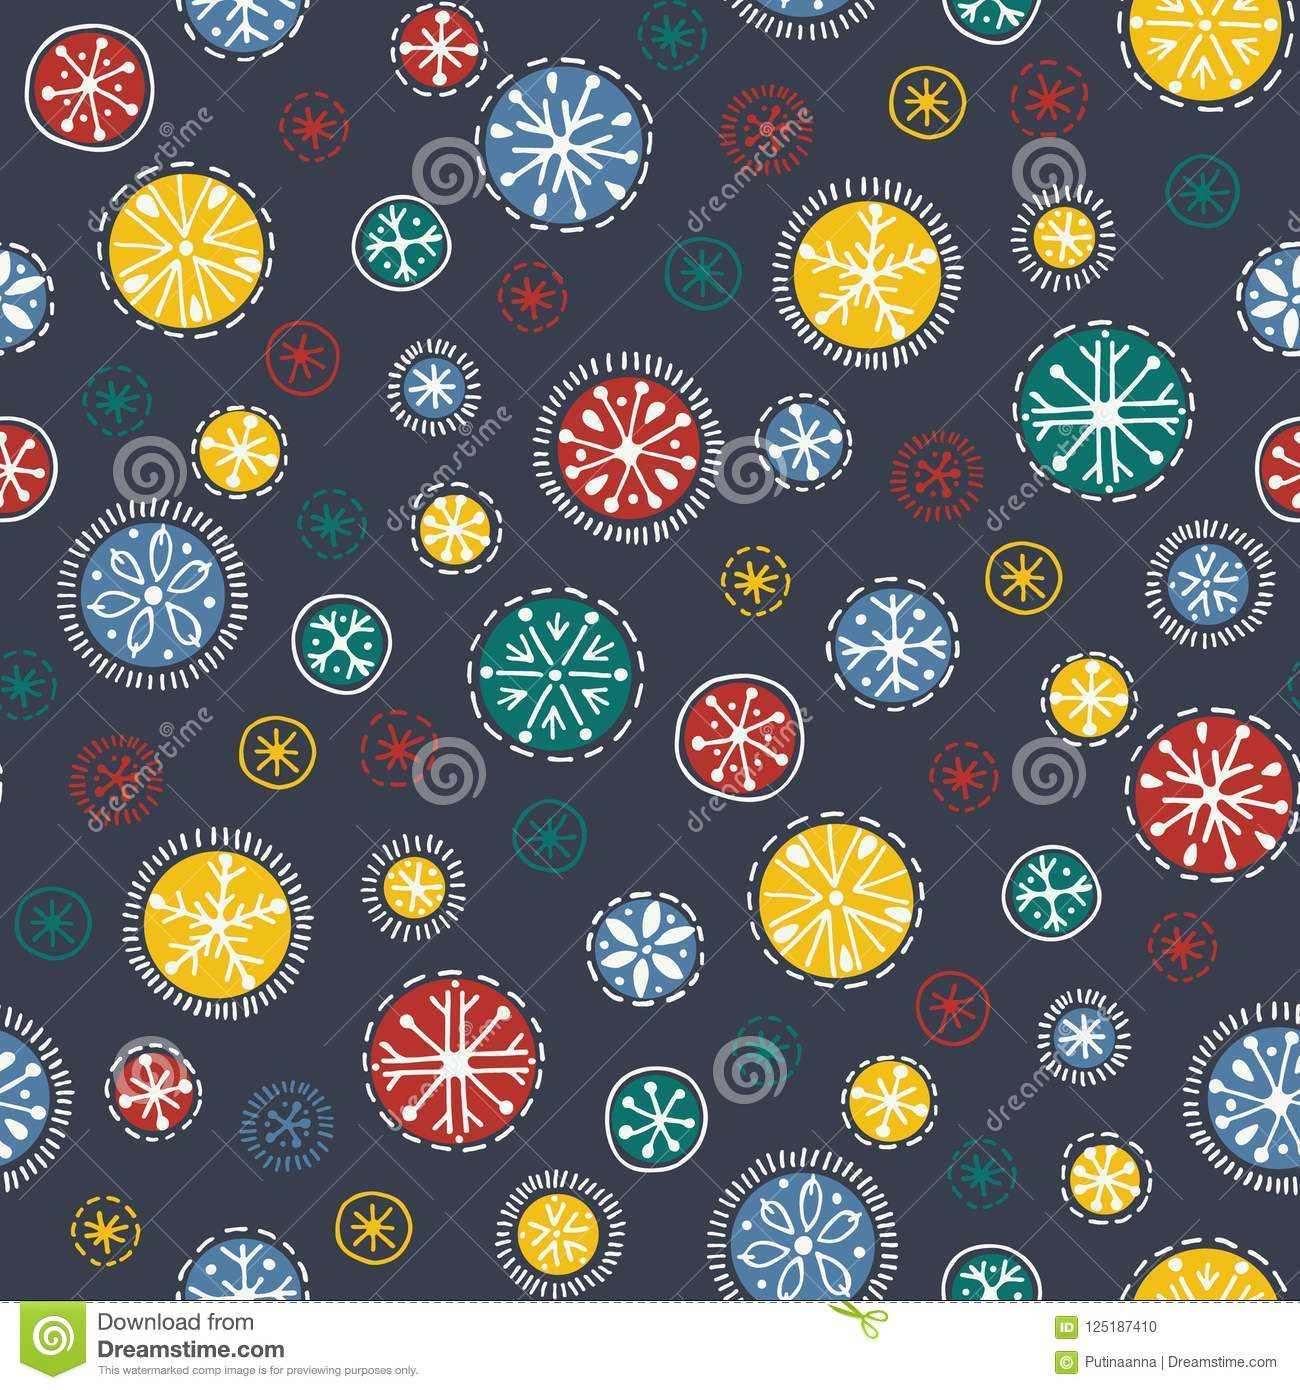 Hand drawn bright bohemian Christmas snowflakes vector seamless pattern background. Winter Holiday Handcrafted Print